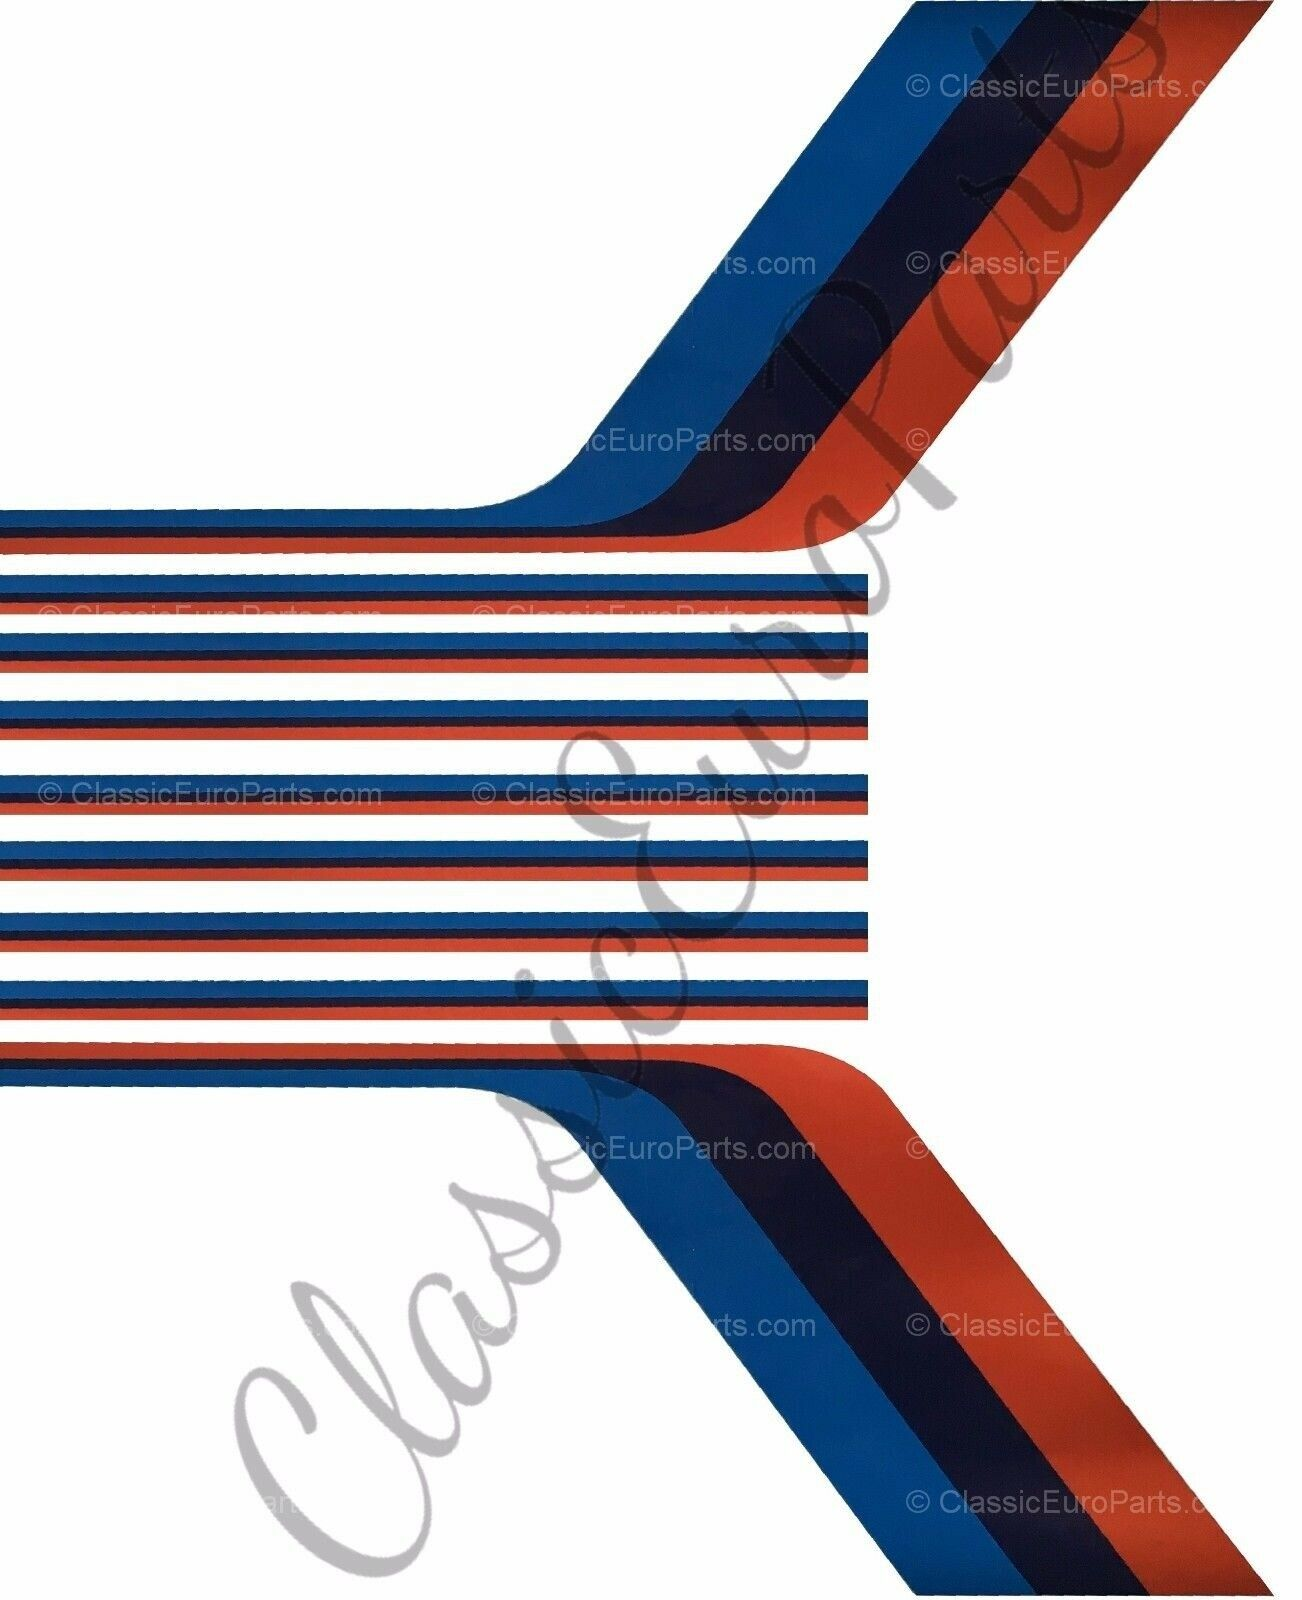 bmw e30 m technic stripe decal set classiceuroparts BMW E30 M3 EVO bmw e30